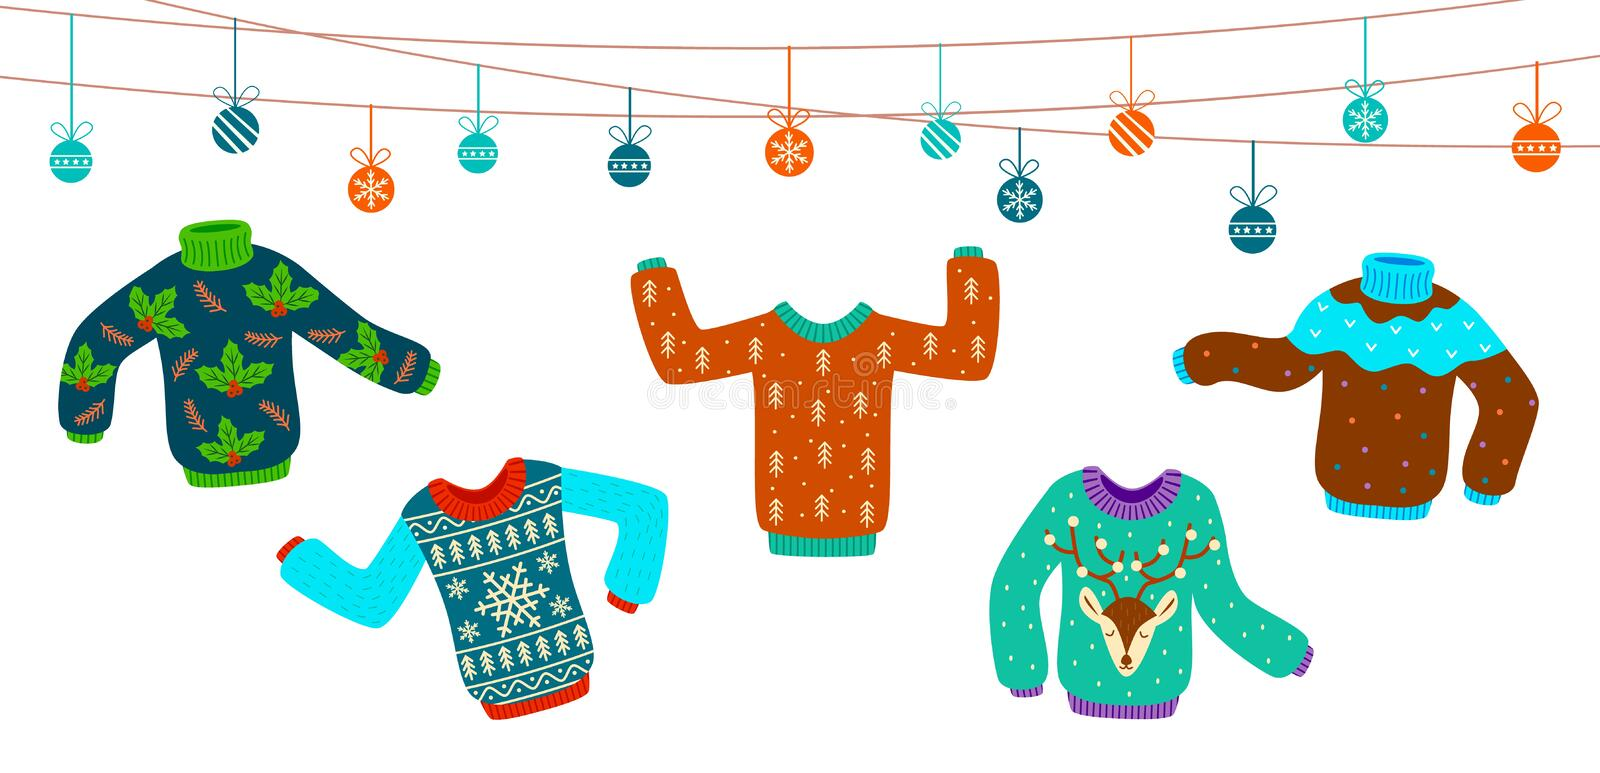 Ugly christmas sweater. Dancing knitting sweaters, xmas jumpers vector winter holiday party invitation card stock illustration